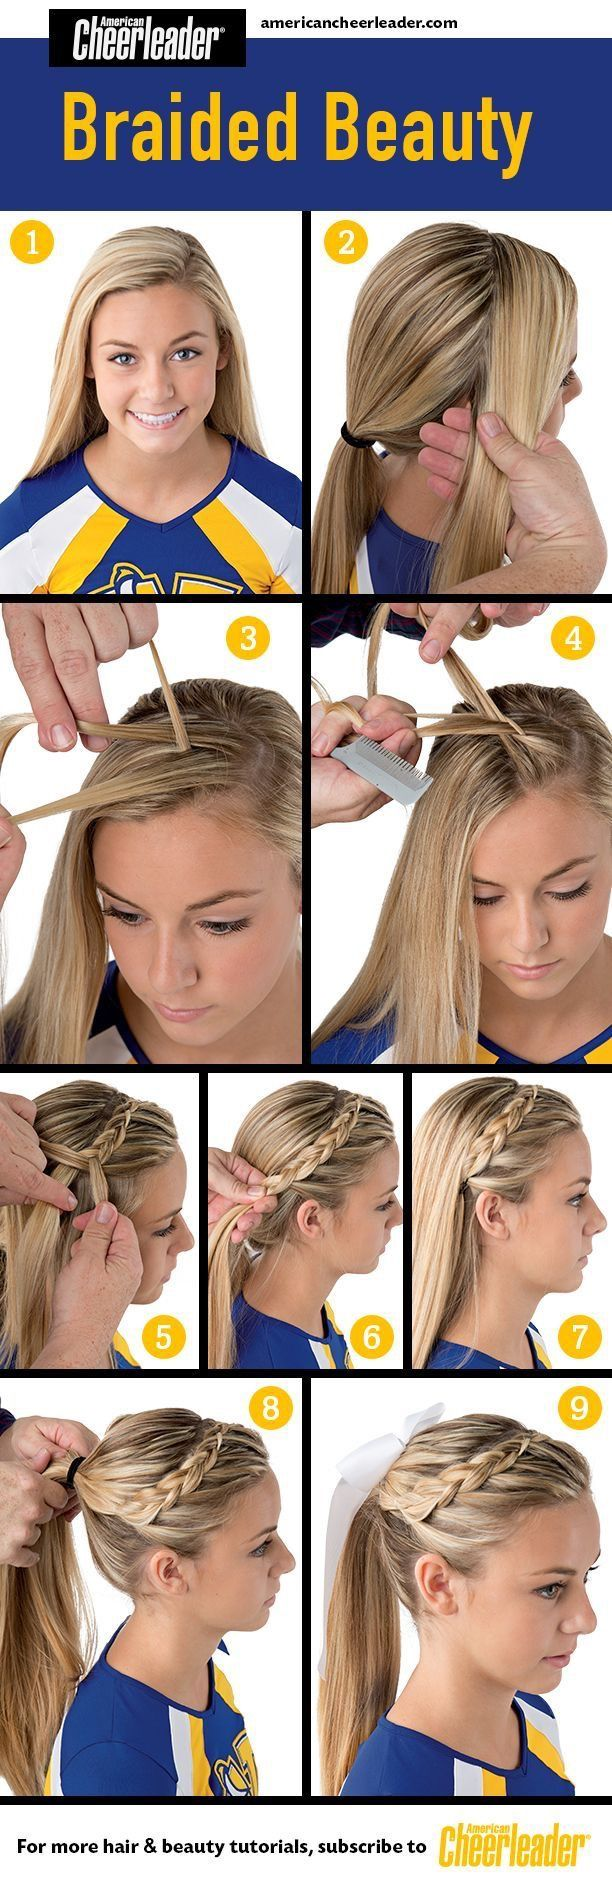 Braided Beauty - From American Cheerleader | TSS Photography